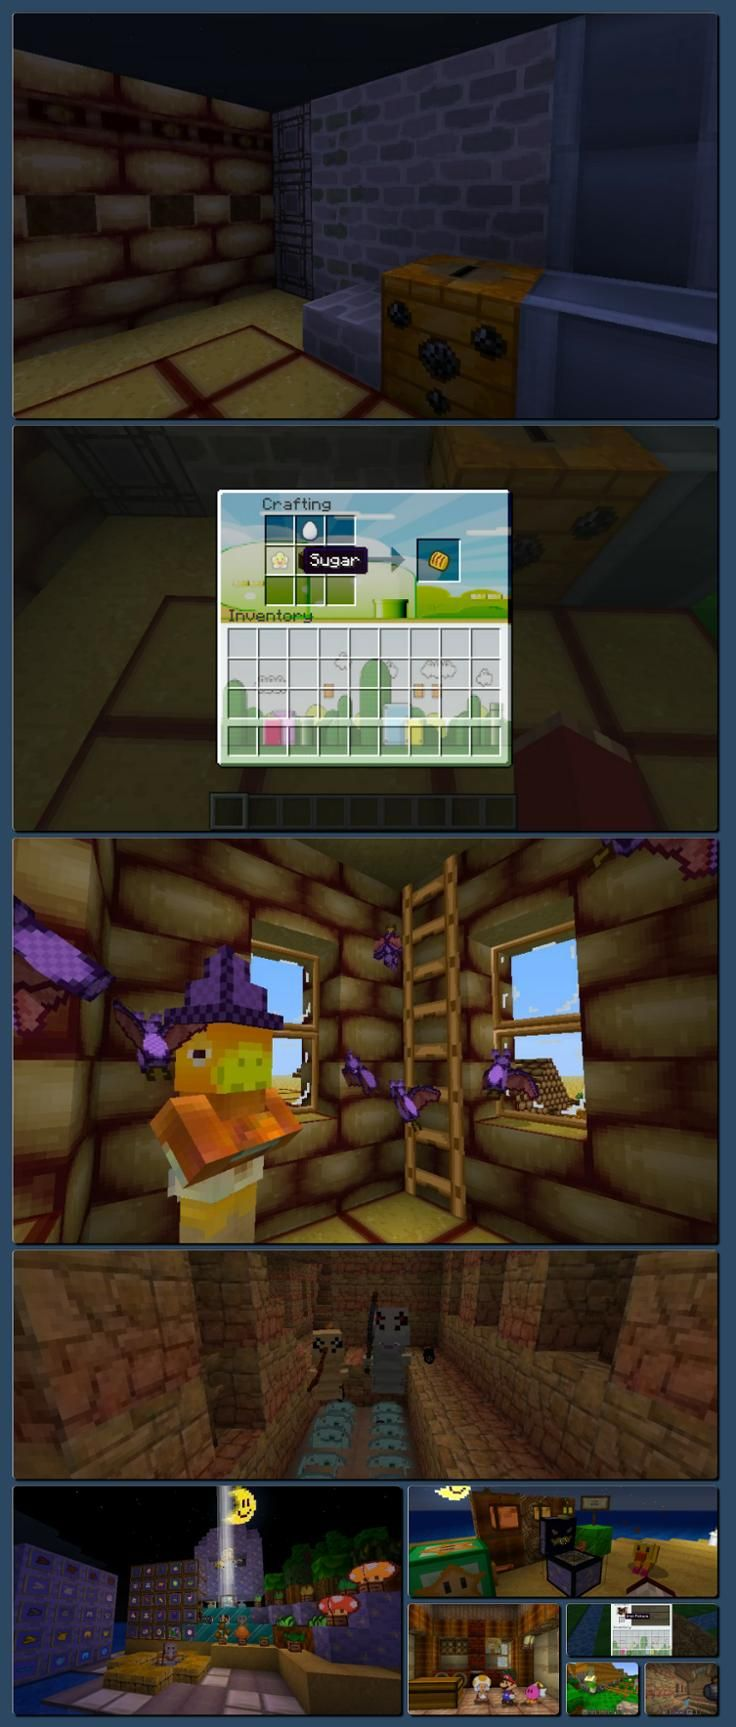 Pin by Venisia Gonzalez on Minecraft Textures/Resource Packs